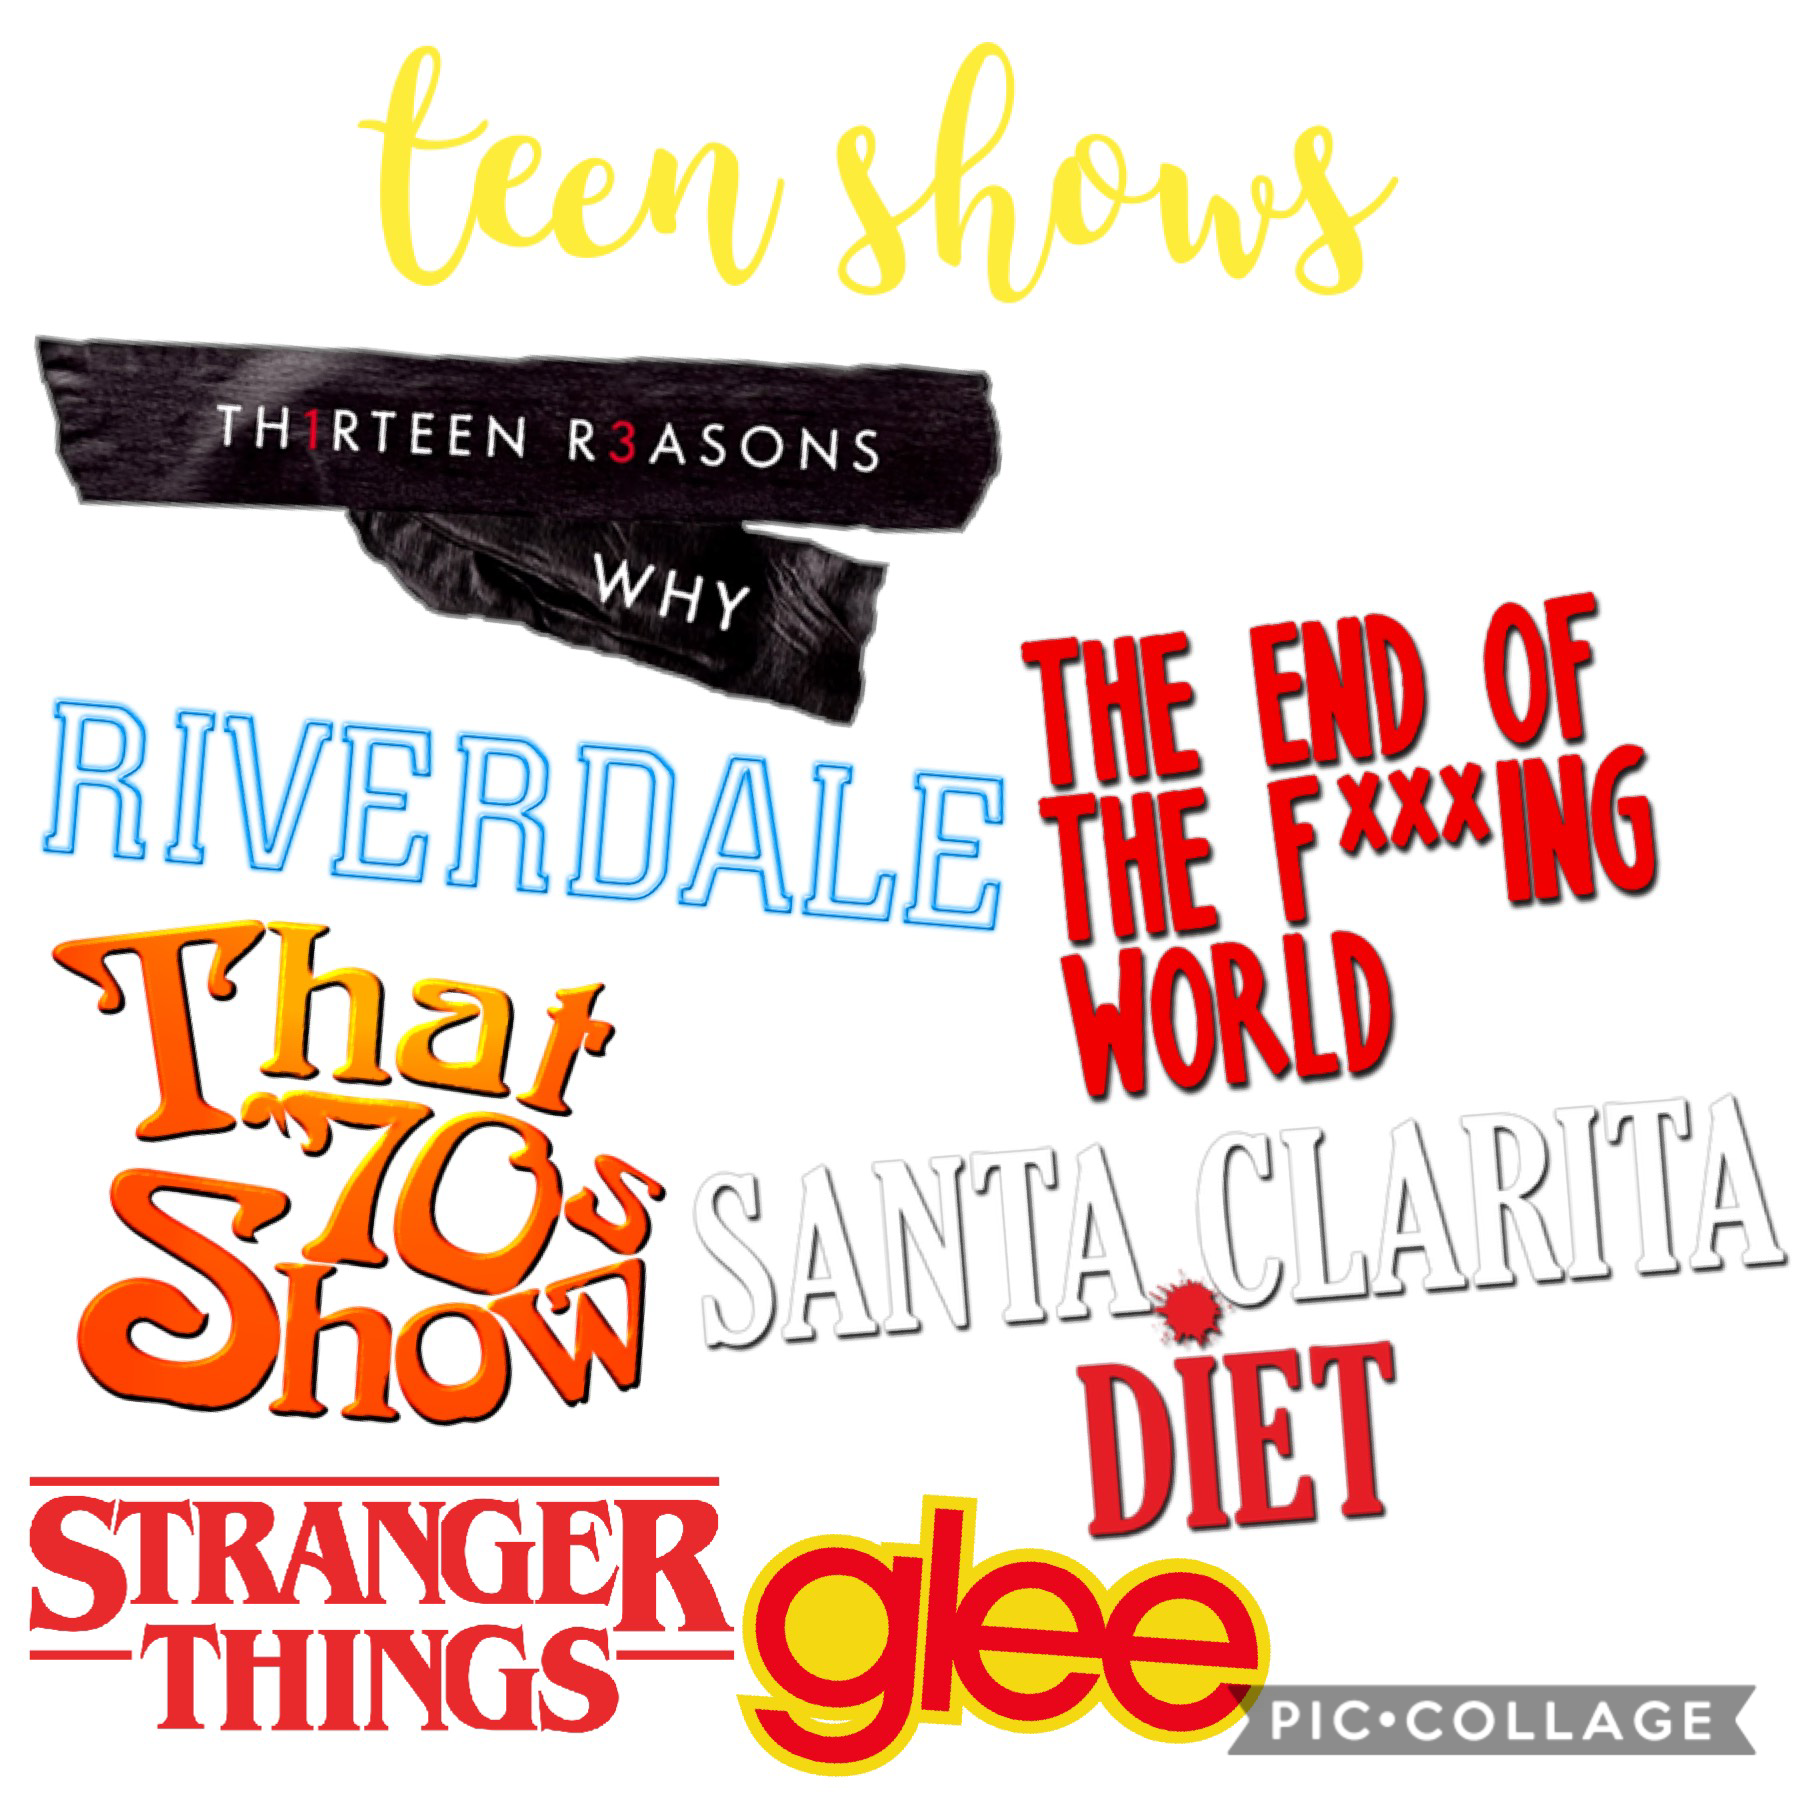 shows I watch/ed as a teen. I don't watch riverdale anymore lol